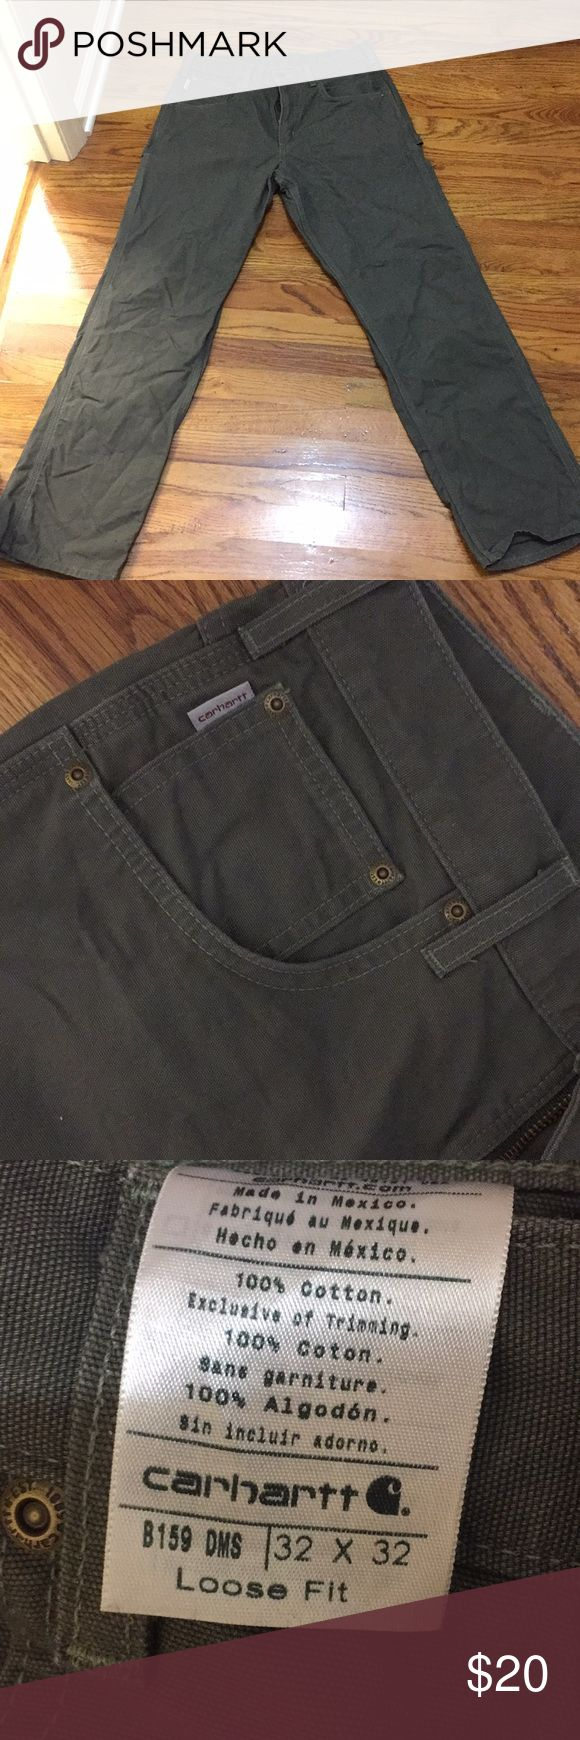 Carhartt pants 32x32 like new These pants are like new I did not like the way they fit when I got them Carhartt Pants Chinos & Khakis